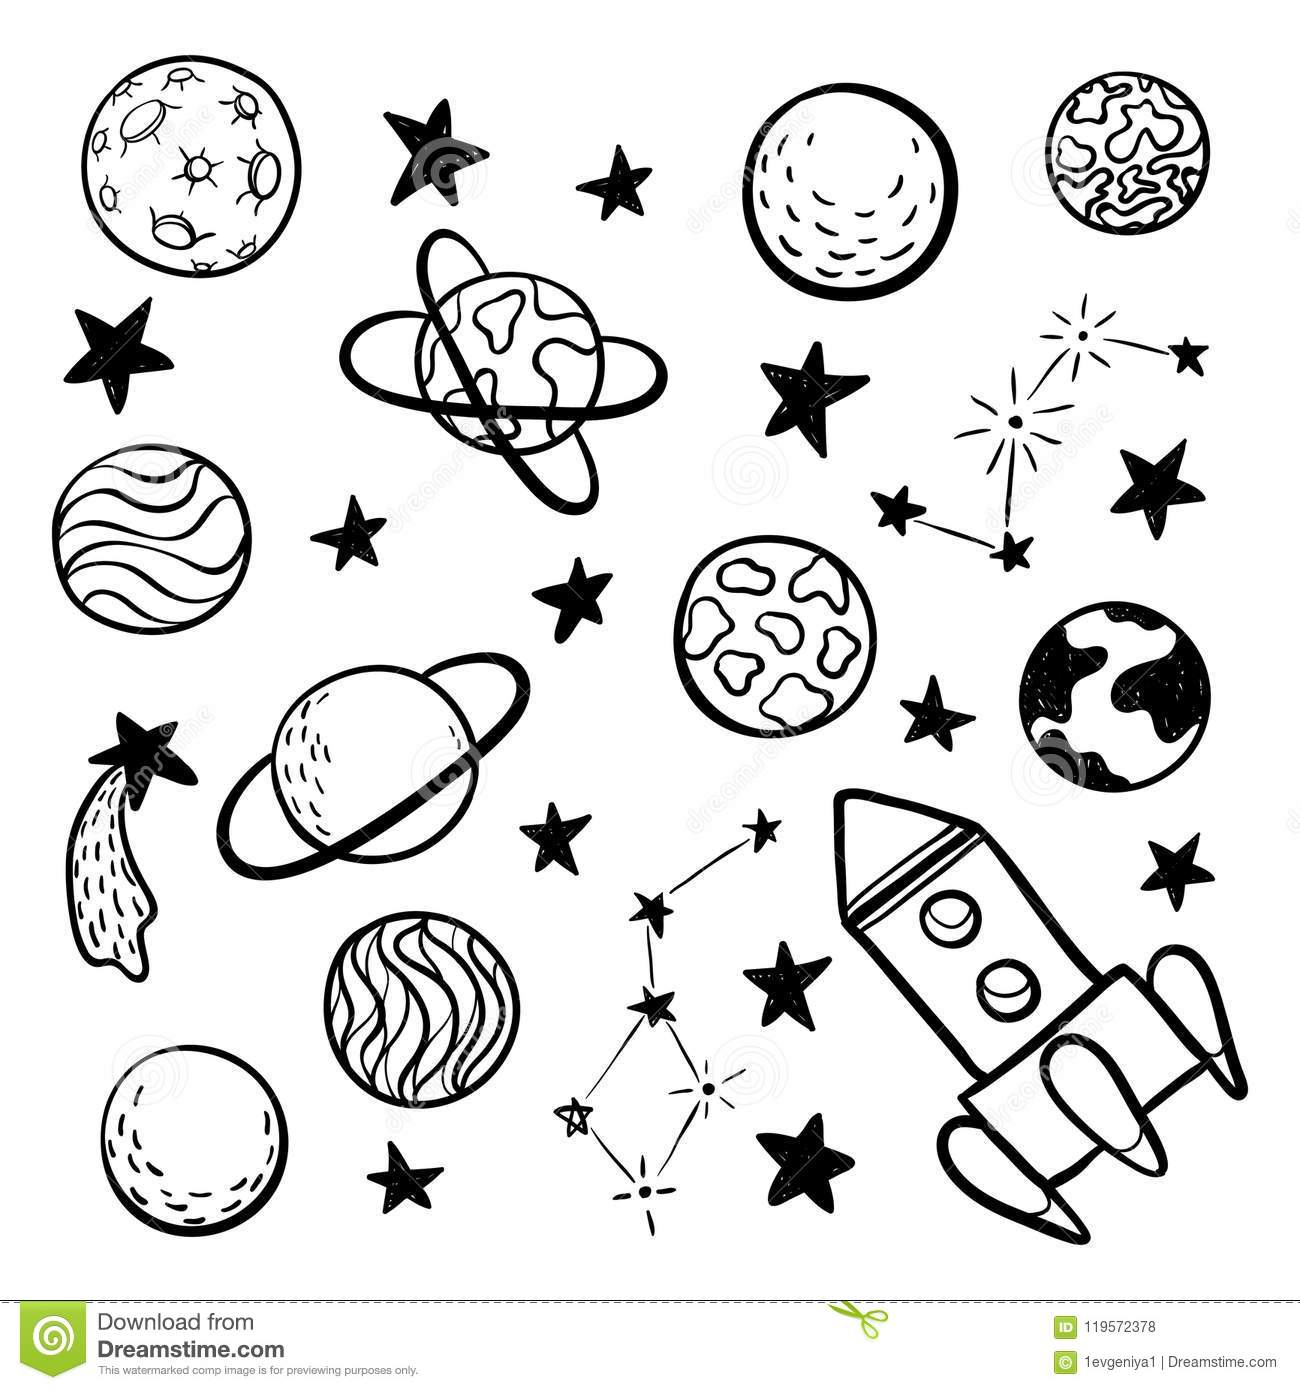 Big Set Of Hand Drawn Doodle Space Elements Space Rocket